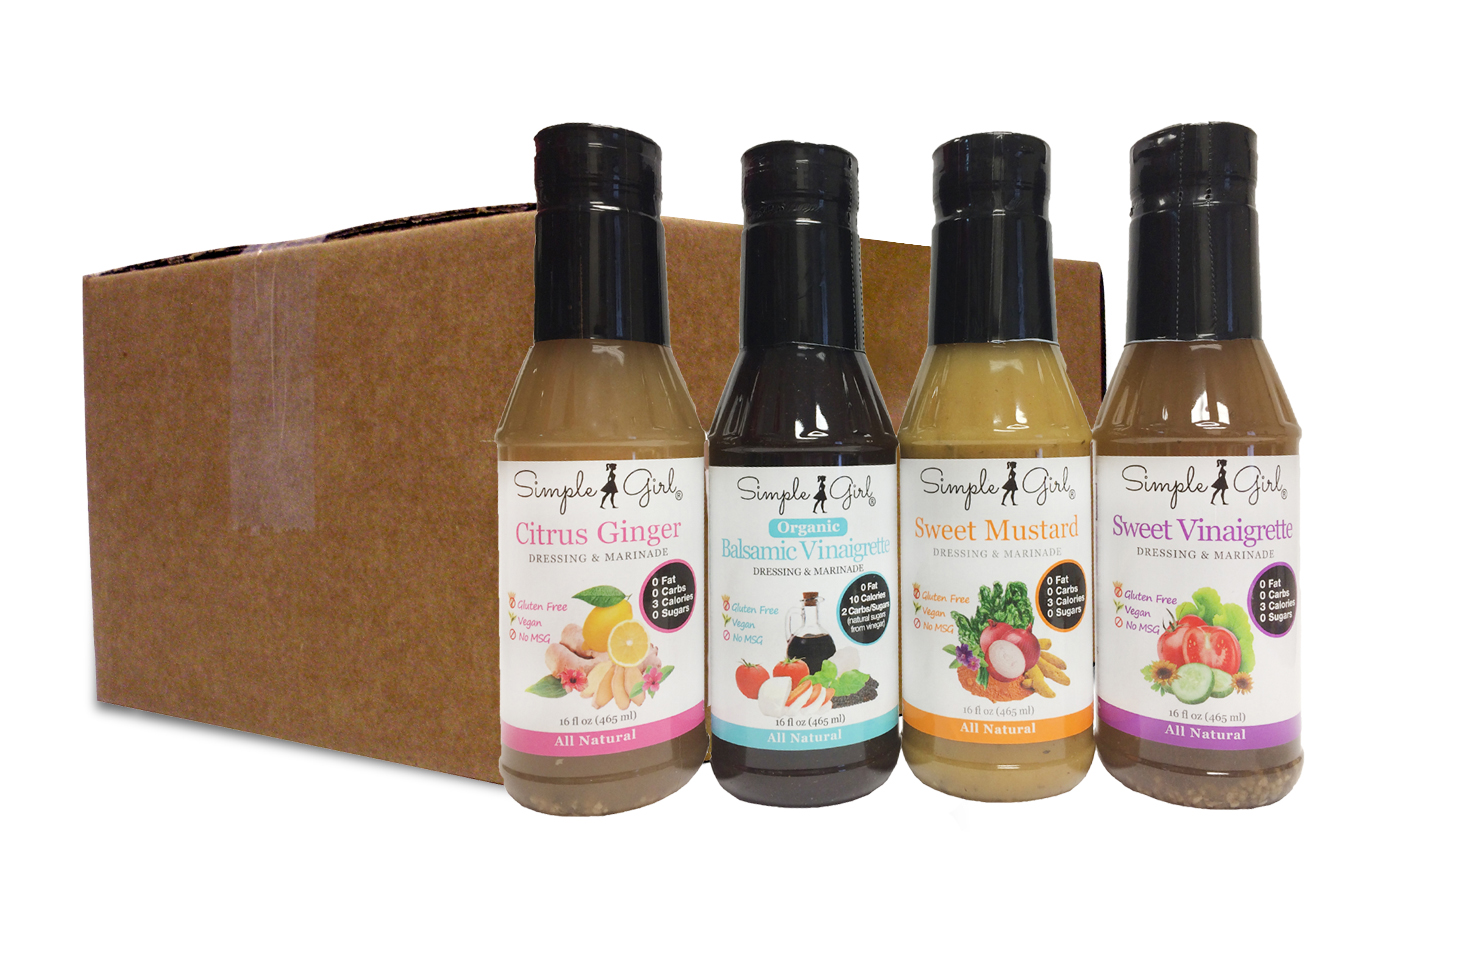 simple-girl-dressings-all-four-flavors-with-case.jpg